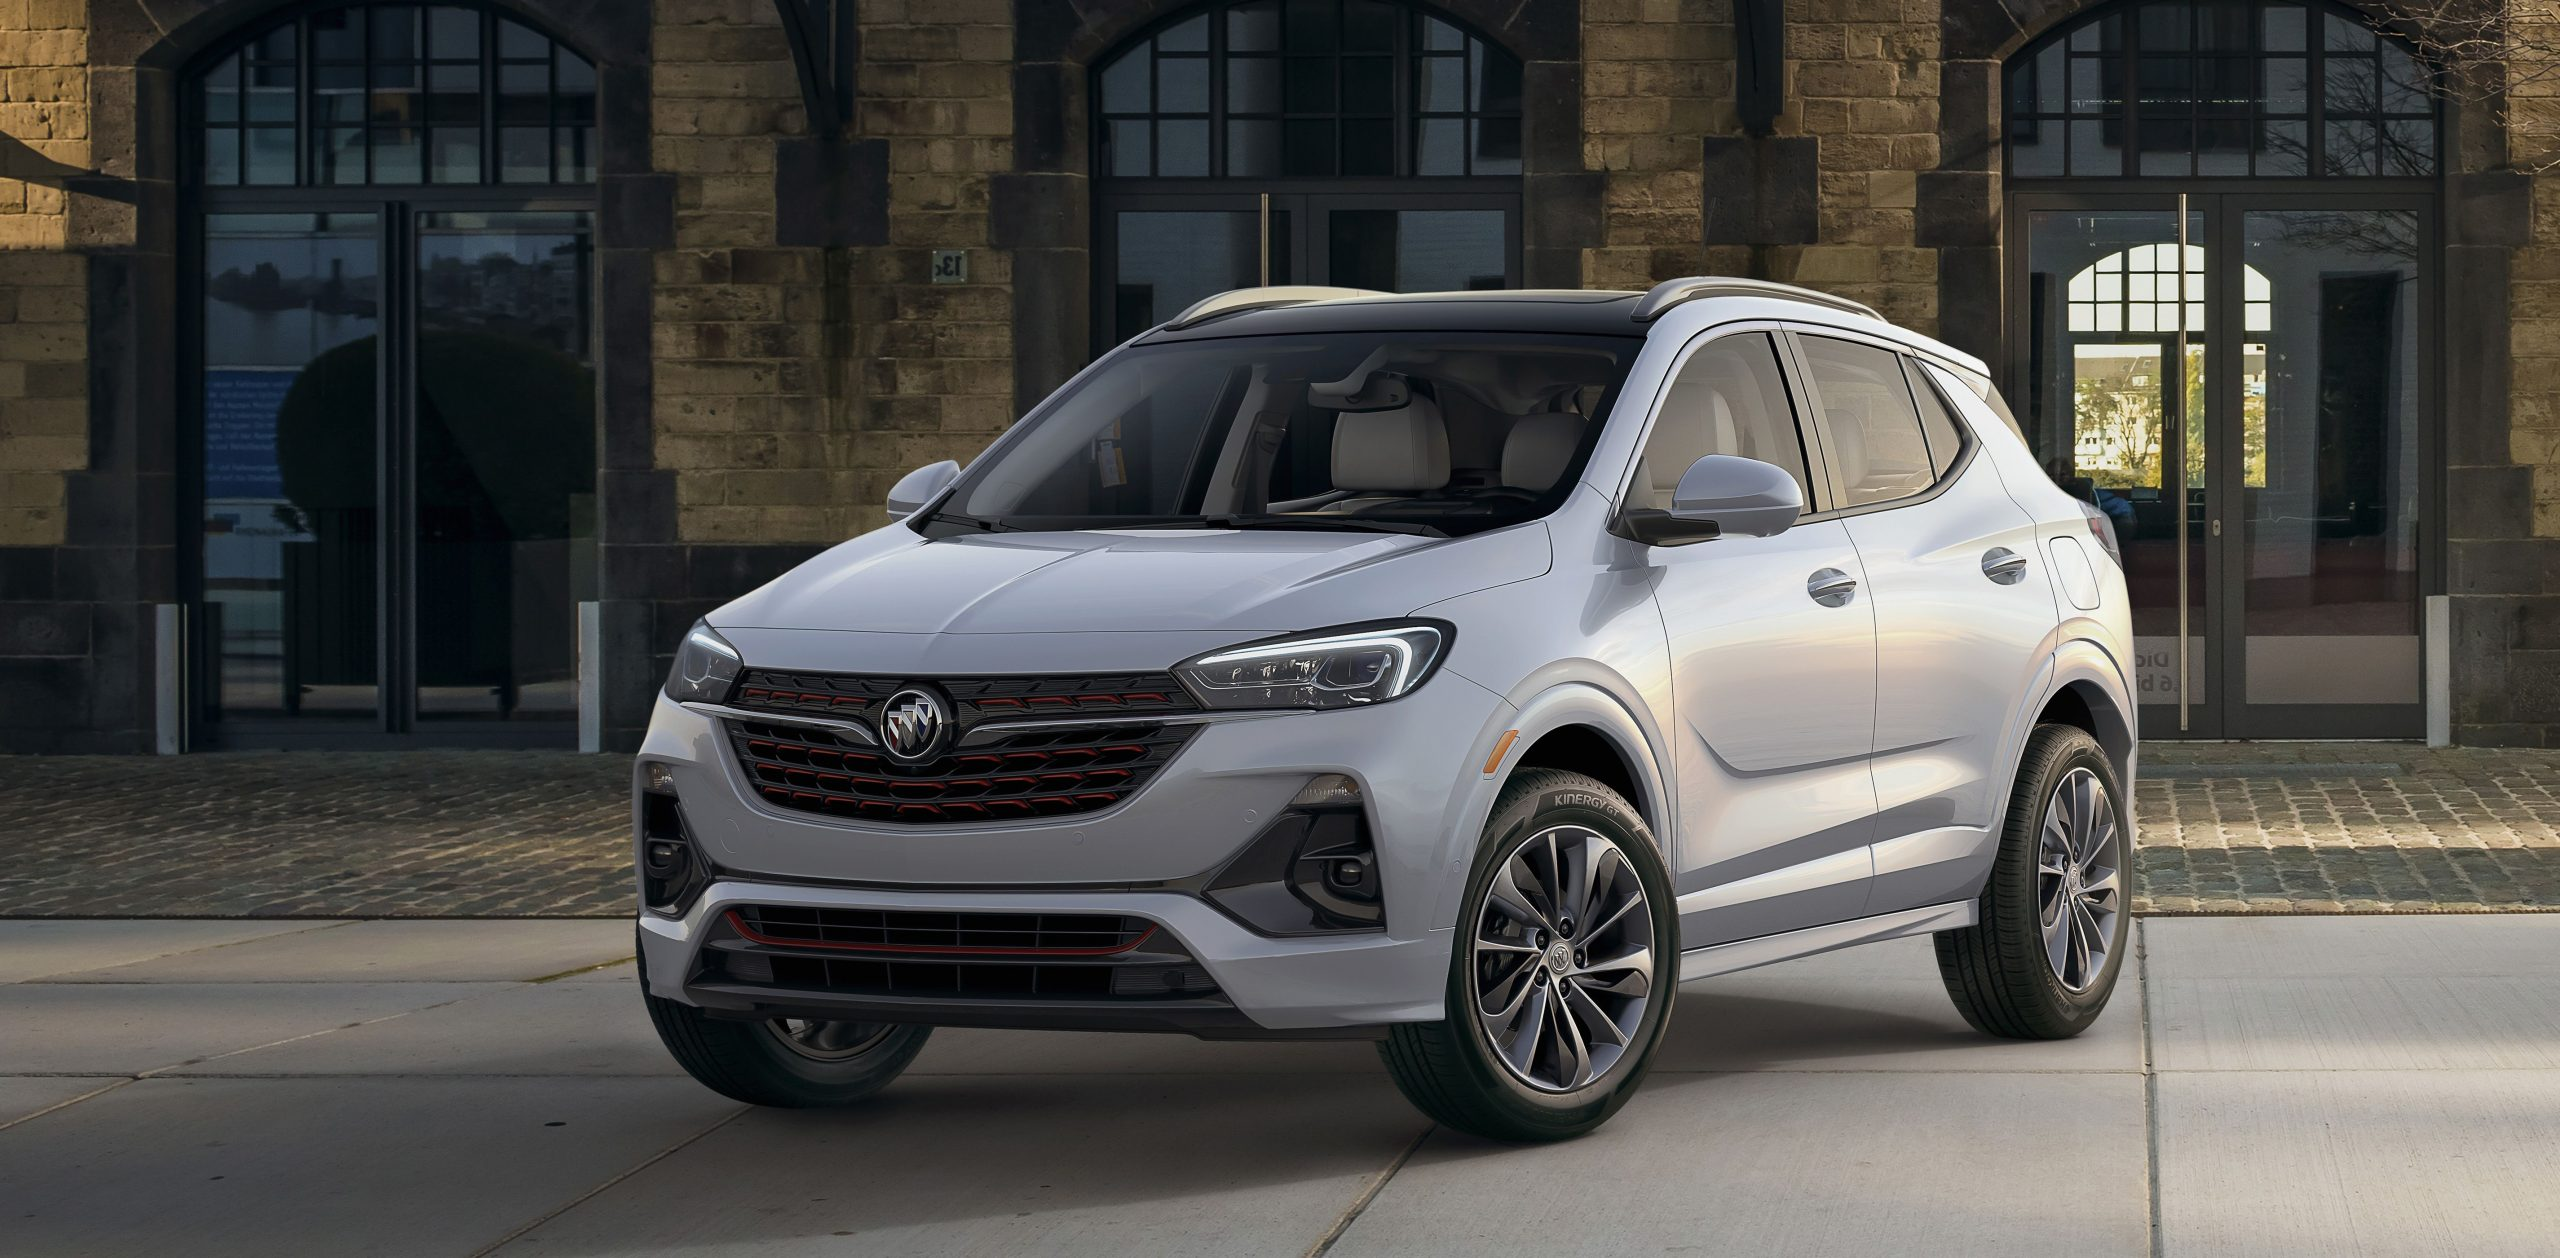 2020 Buick Encore Gx: What We Know So Far New 2021 Buick Encore Gx Build, Curb Weight, Cargo Space